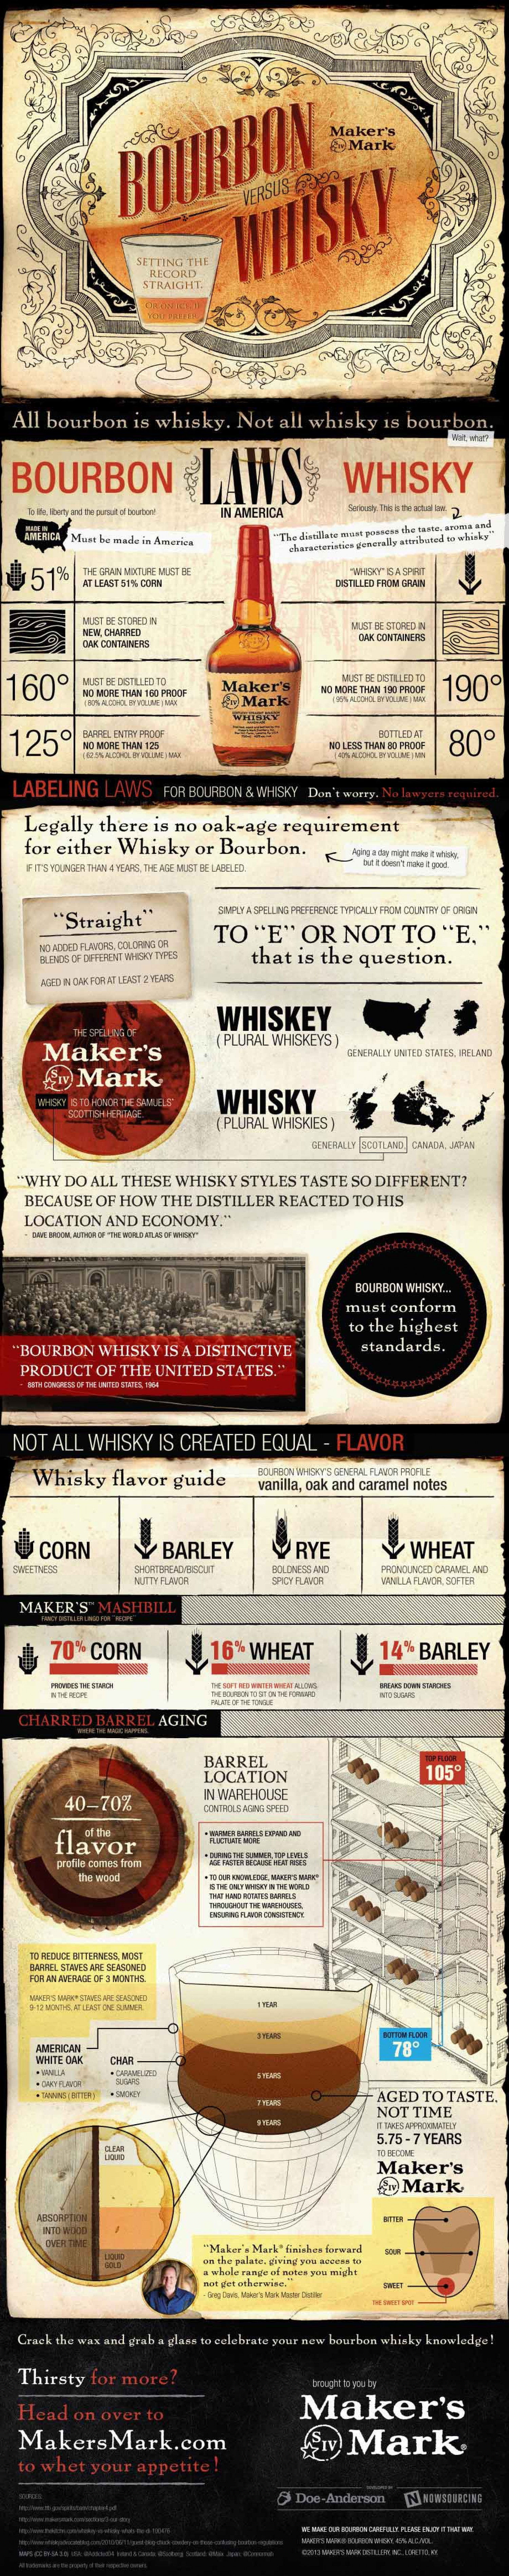 Bourbon vs Whisky: Setting the Record Straight Infographic